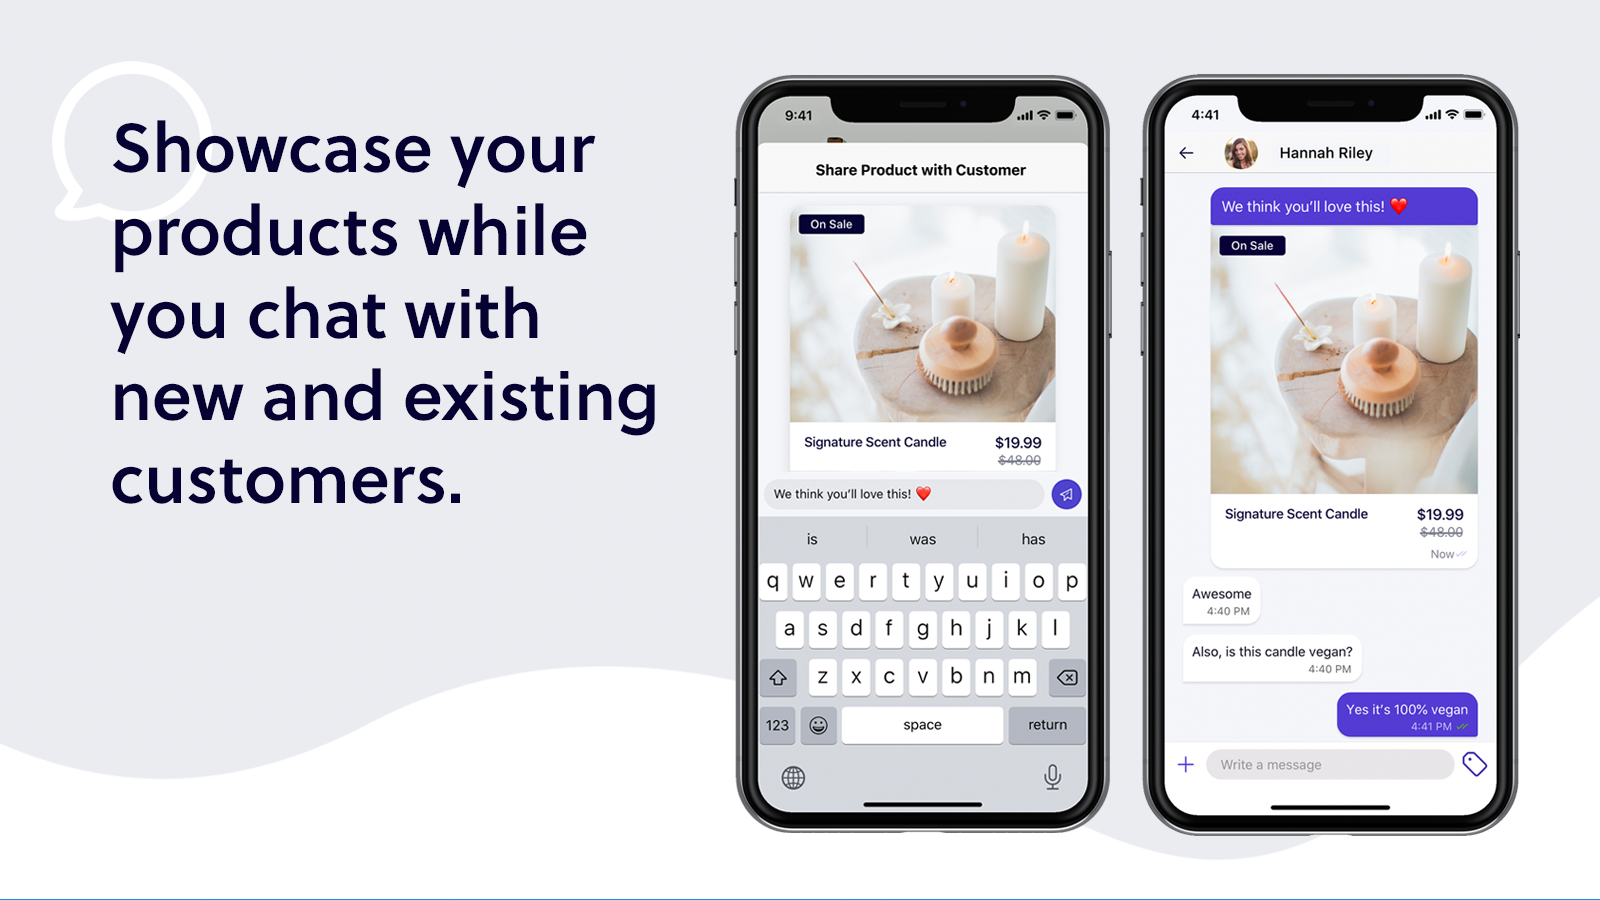 Showcase your products while chatting with customers